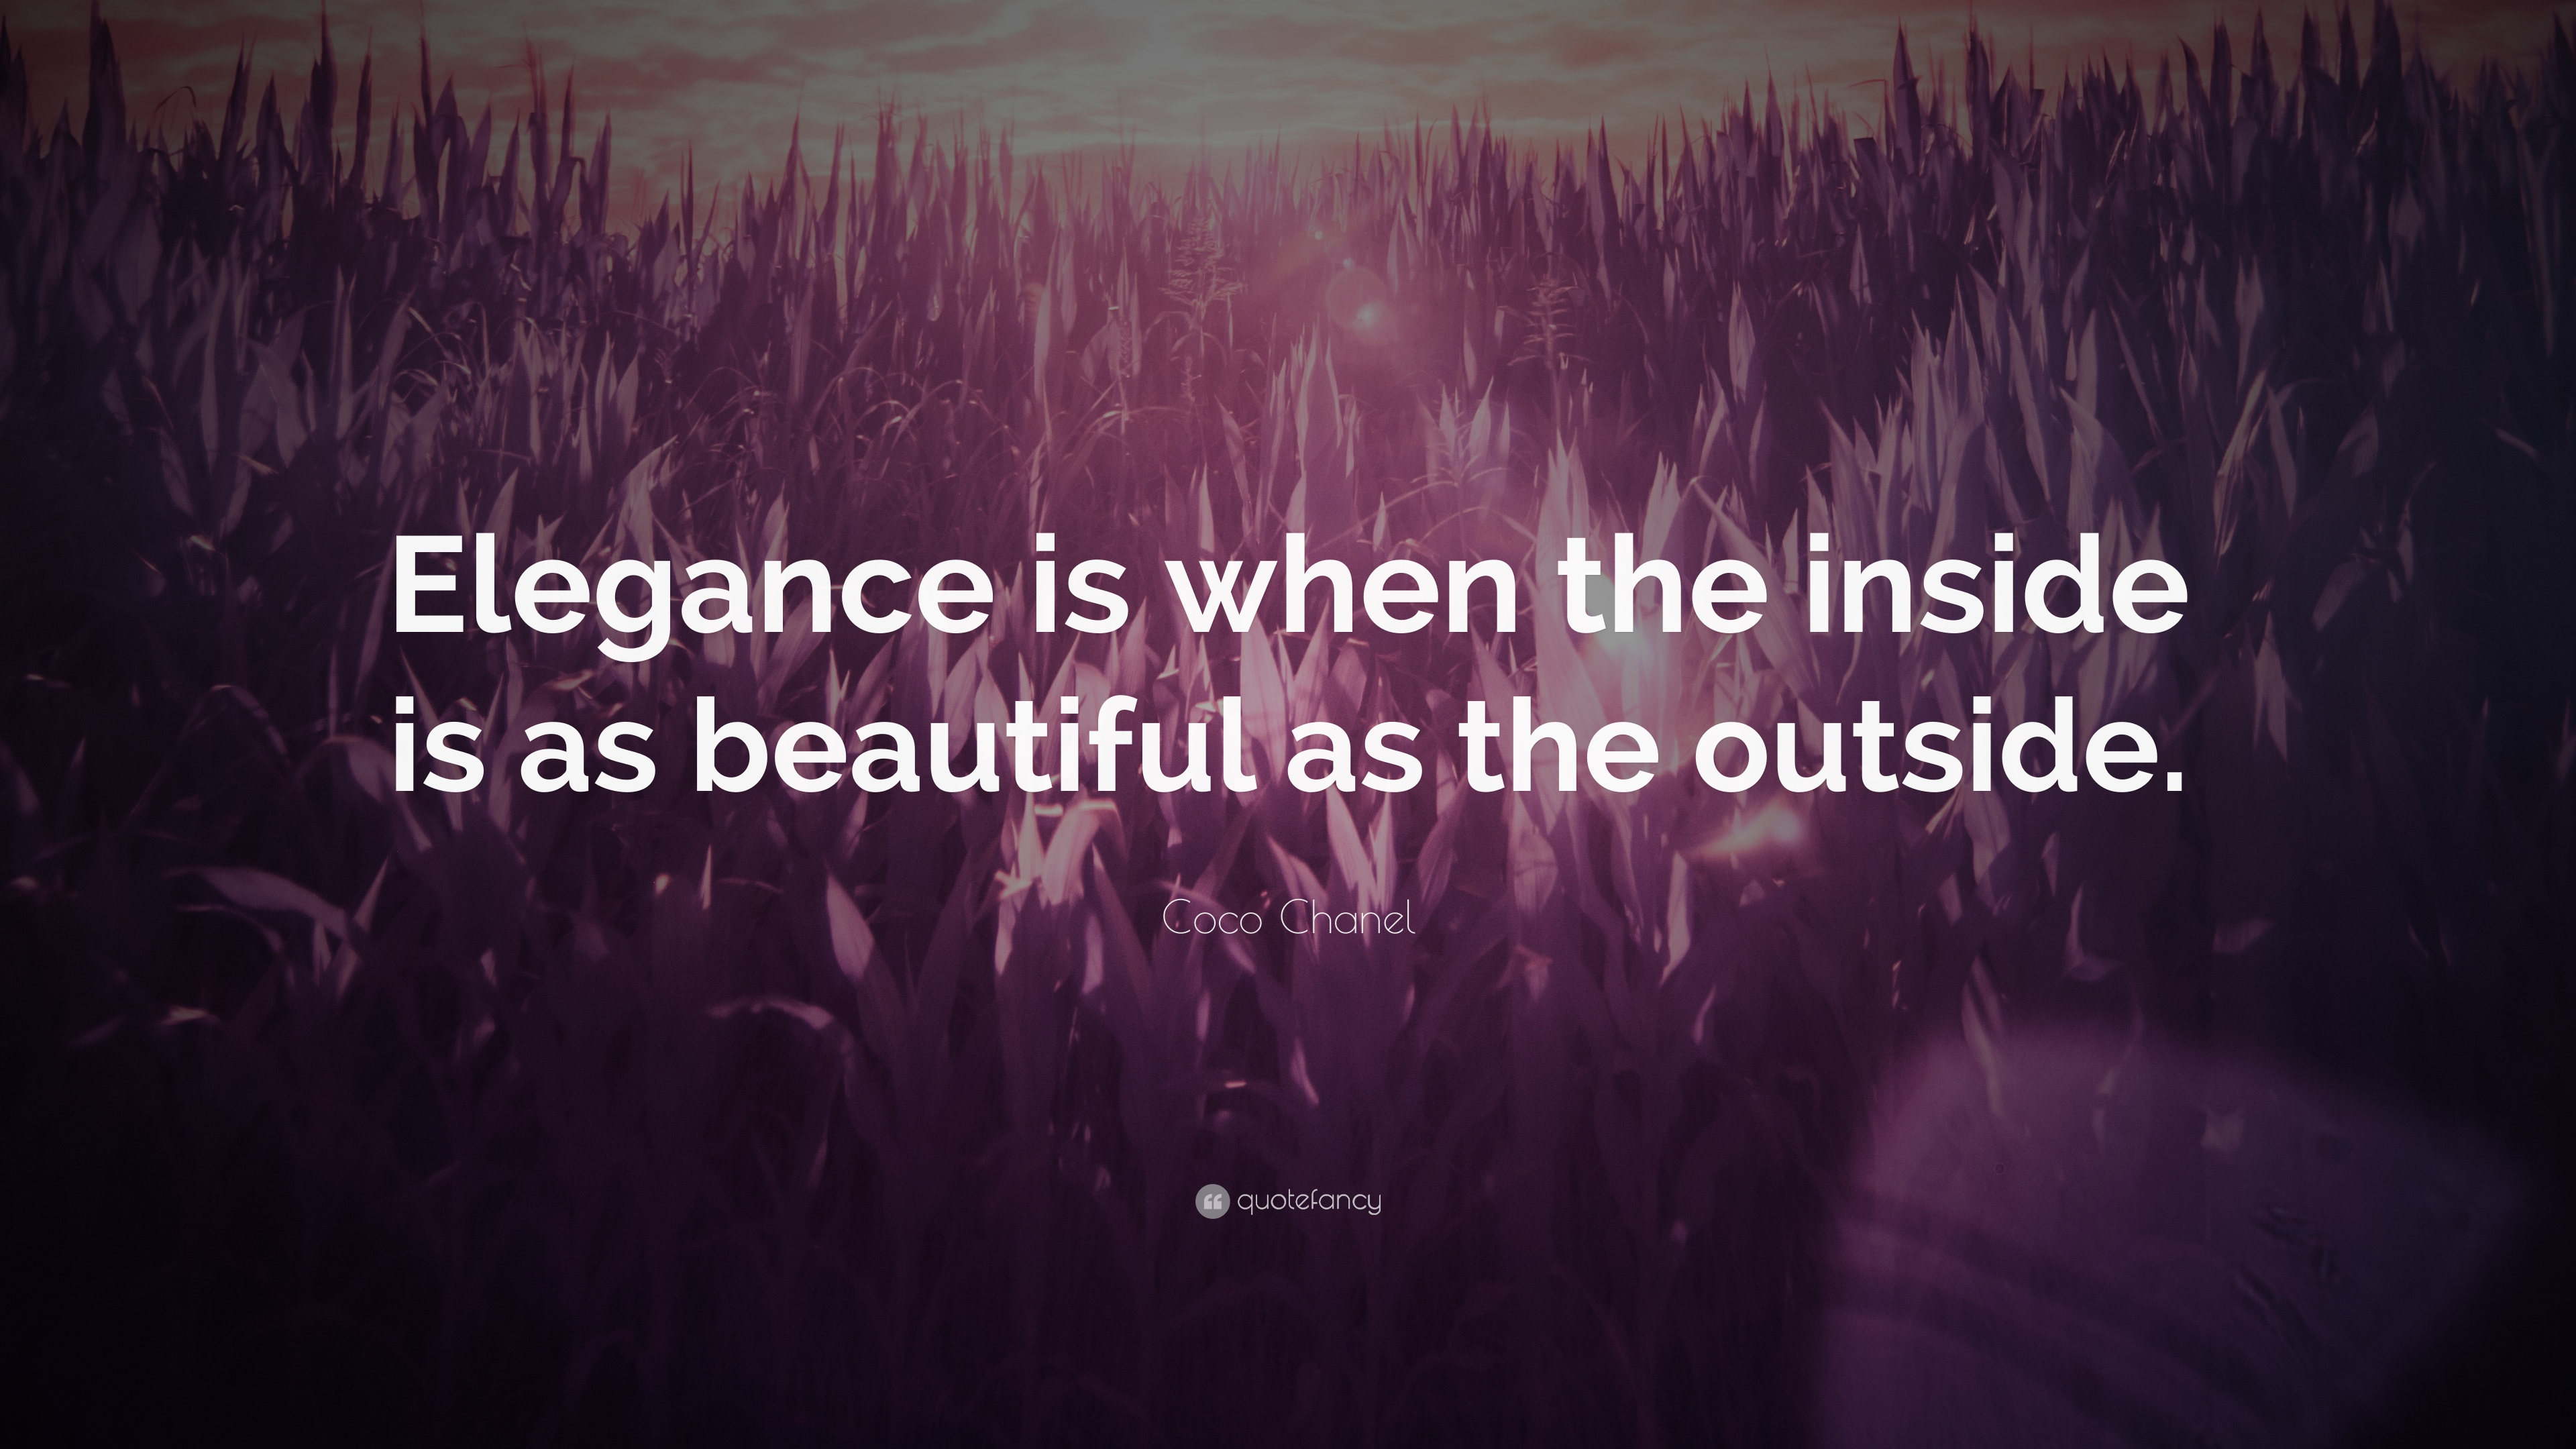 Coco Chanel Quote Elegance Is When The Inside Is As Beautiful As